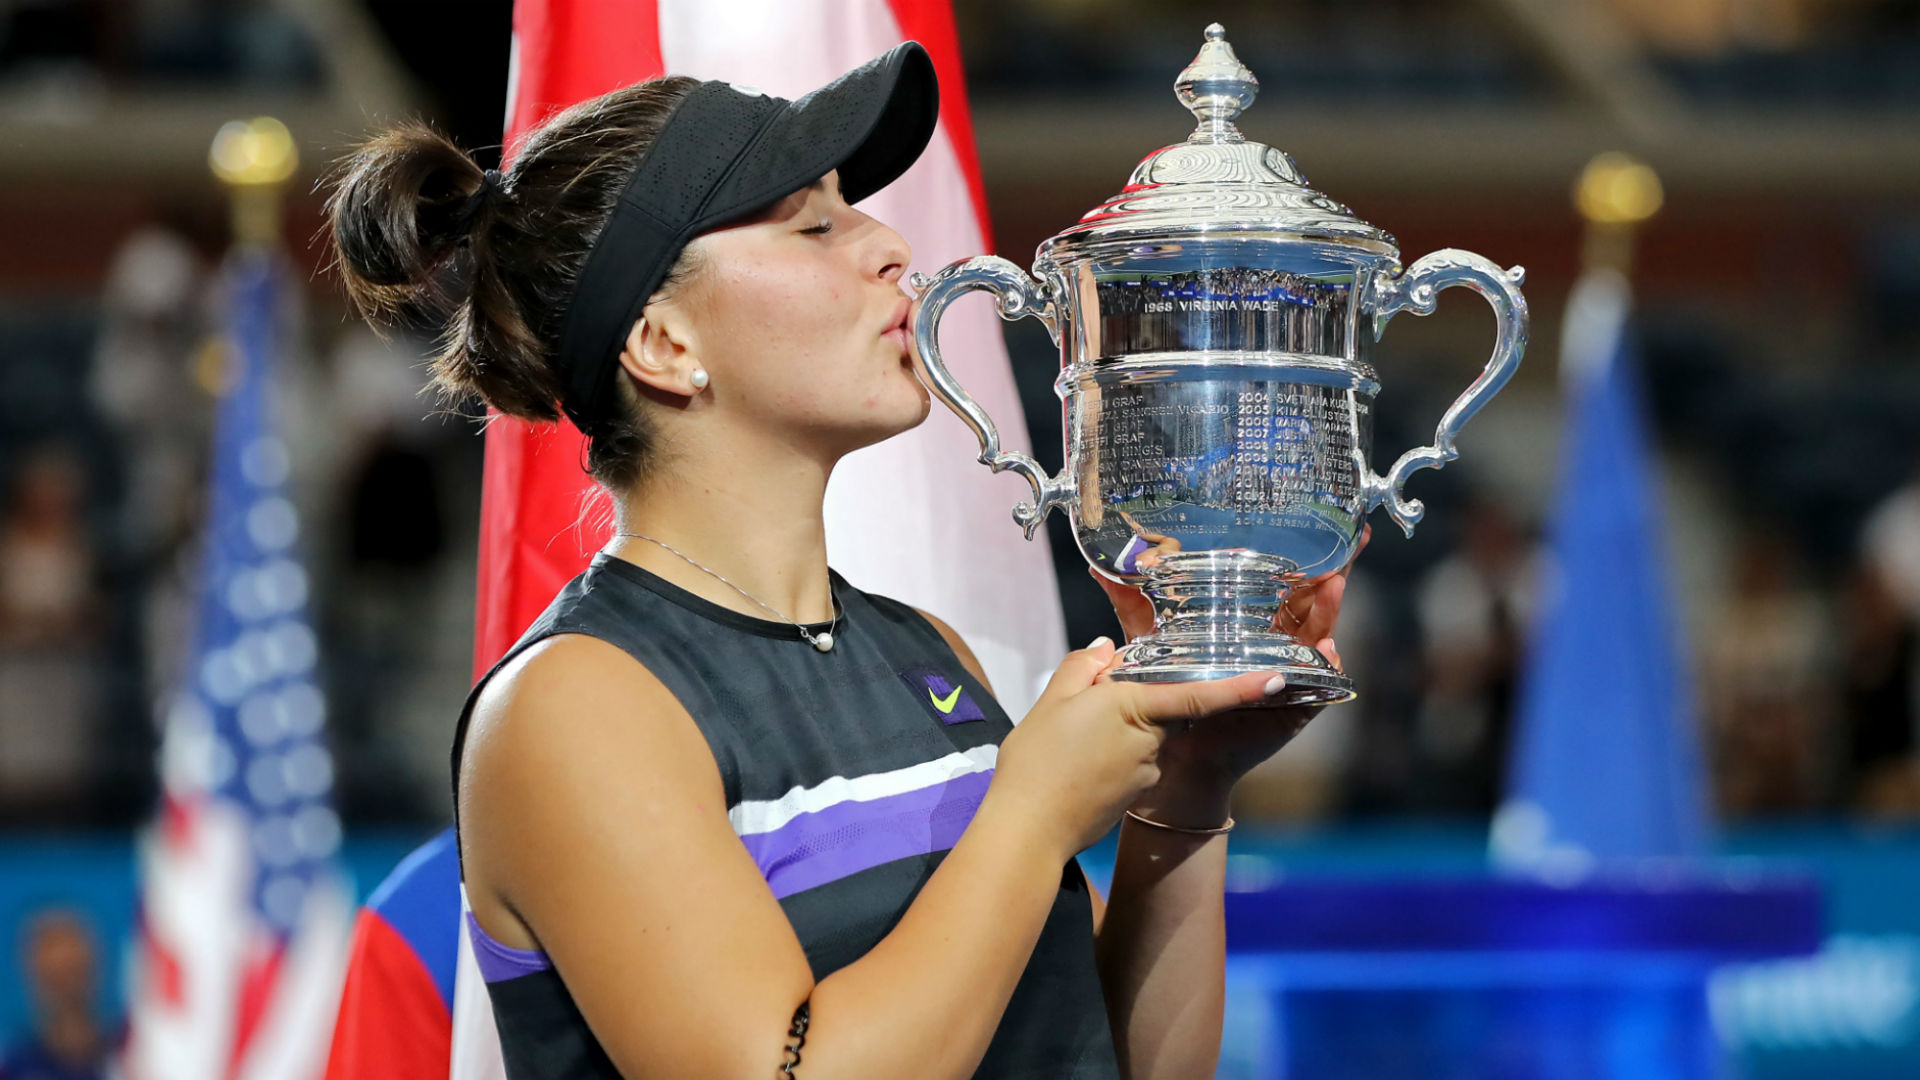 U.S. Open 2020: Canadian Bianca Andreescu to defend title